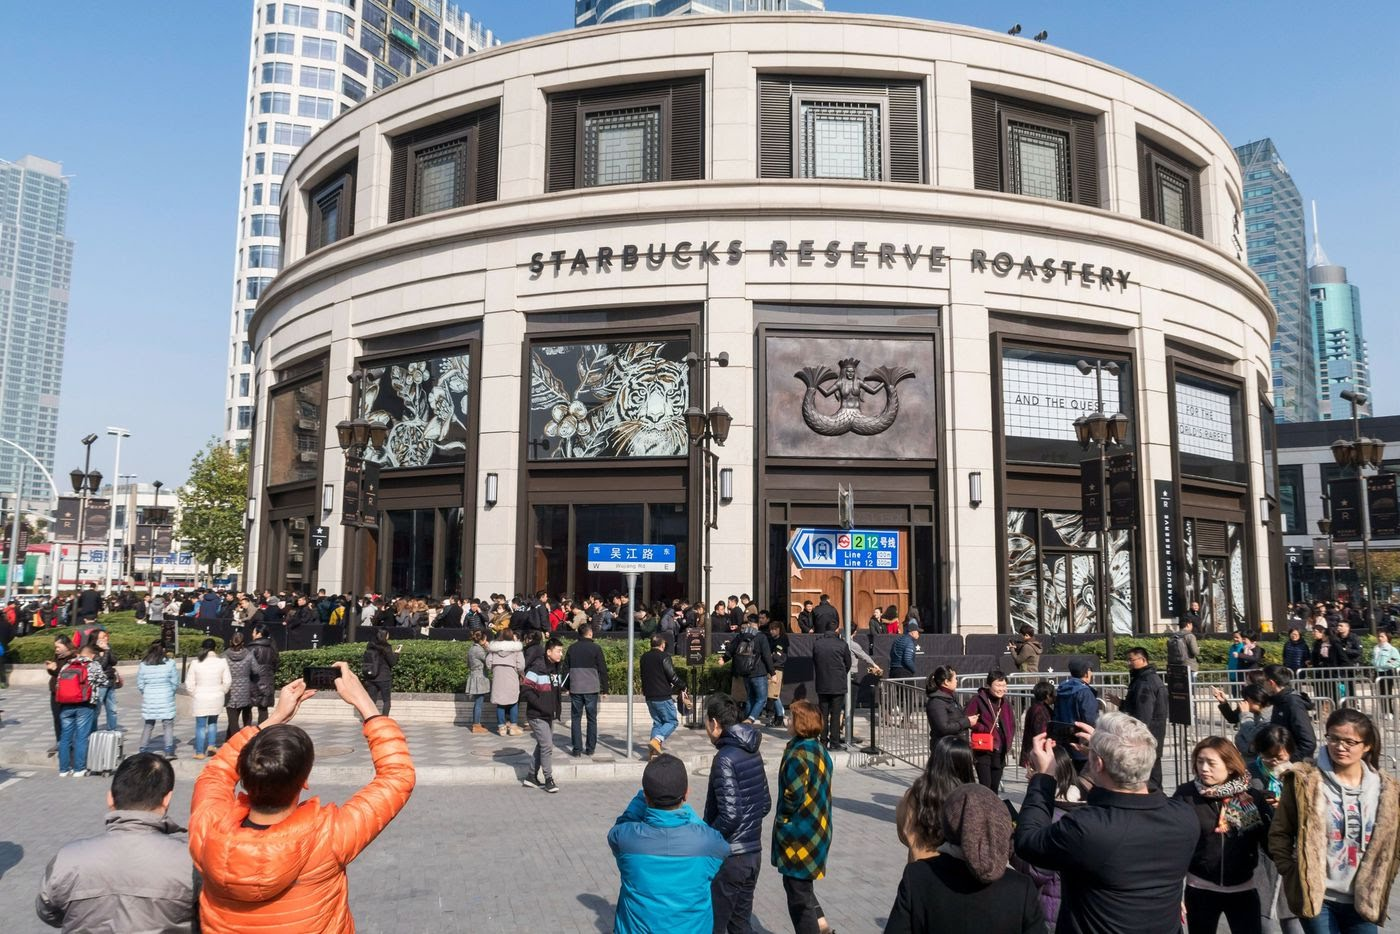 The Starbucks Reserve Roastery in Shanghai attracts a crowd on its opening day, Dec. 6, 2017.